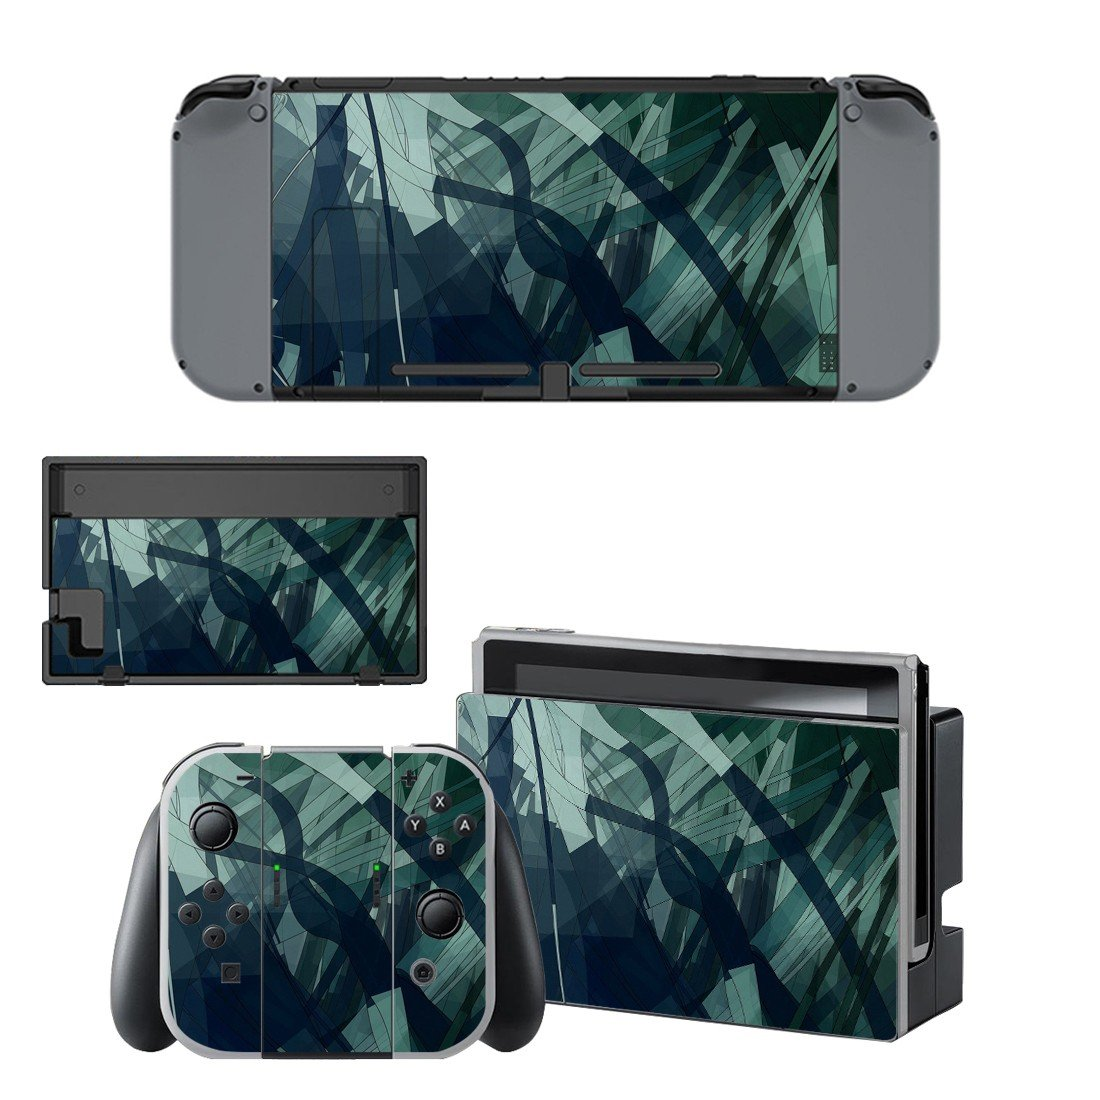 Grey wallpaper decal for Nintendo switch console sticker skin